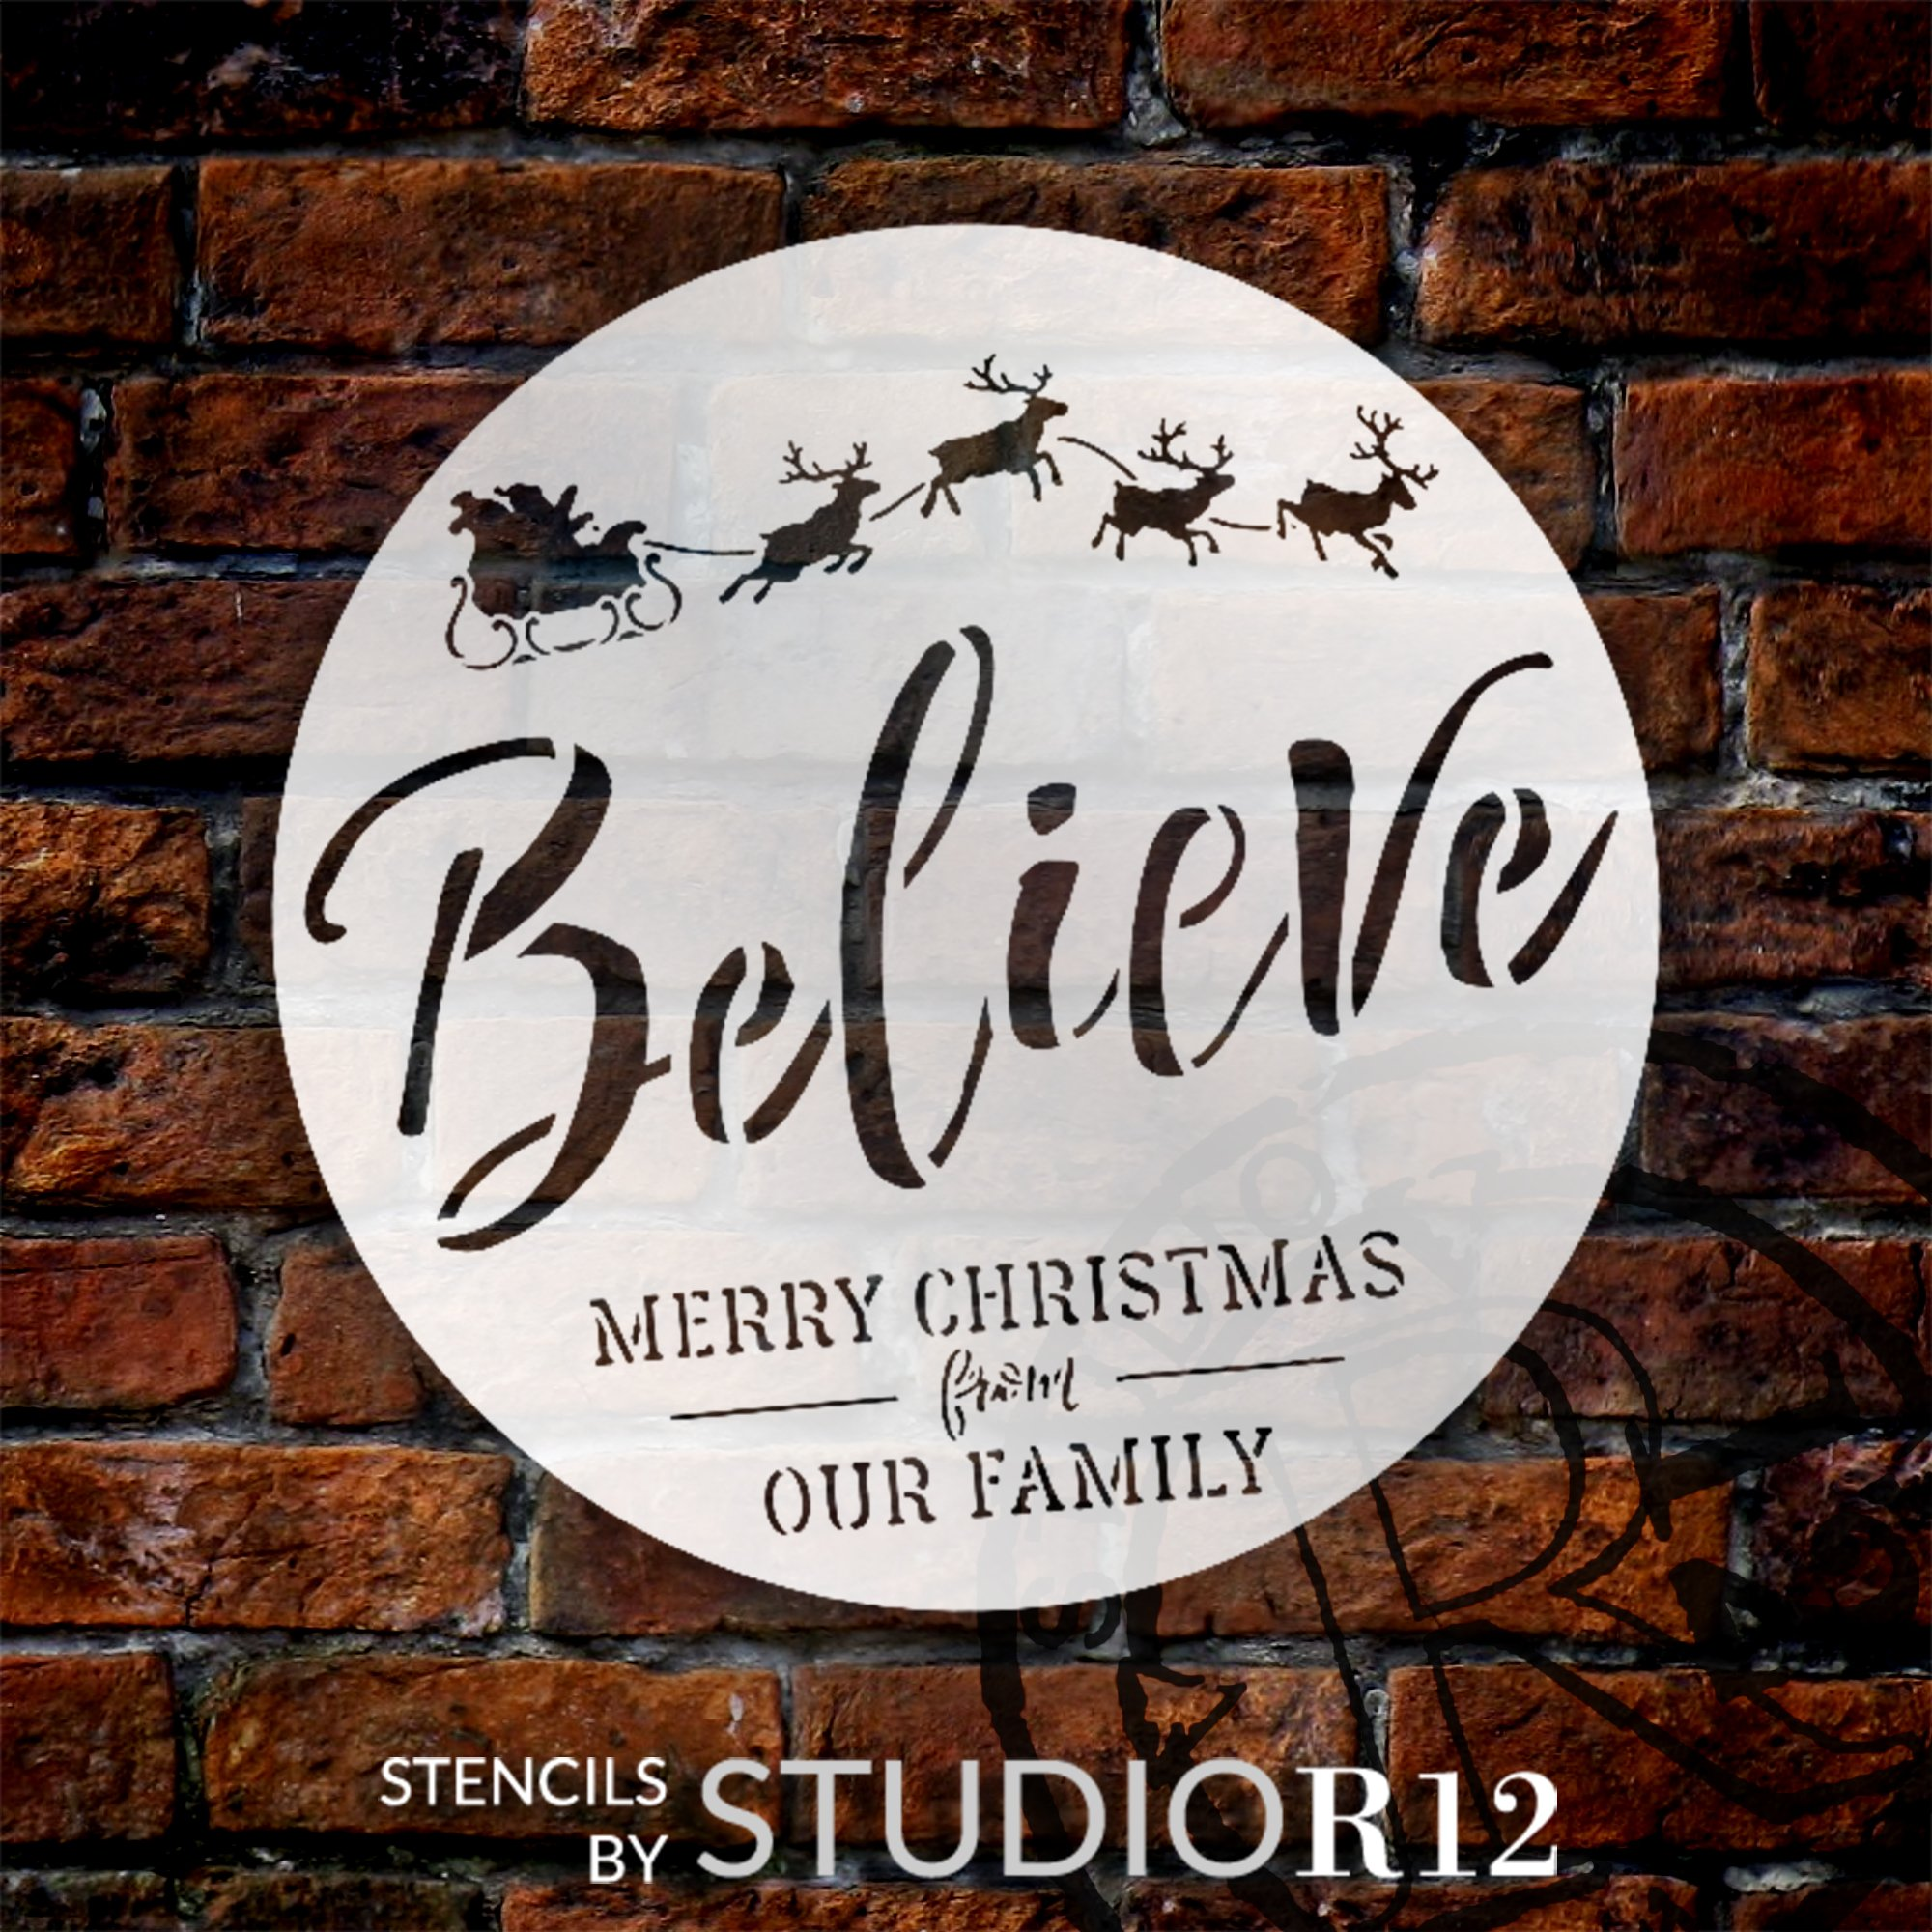 Round Believe Cursive Script Stencil by StudioR12 | Our Family Merry Christmas Santa's Sleigh Reindeer | Reusable Mylar Template | Paint Wood Signs | DIY Home Crafting Decor | Select Size